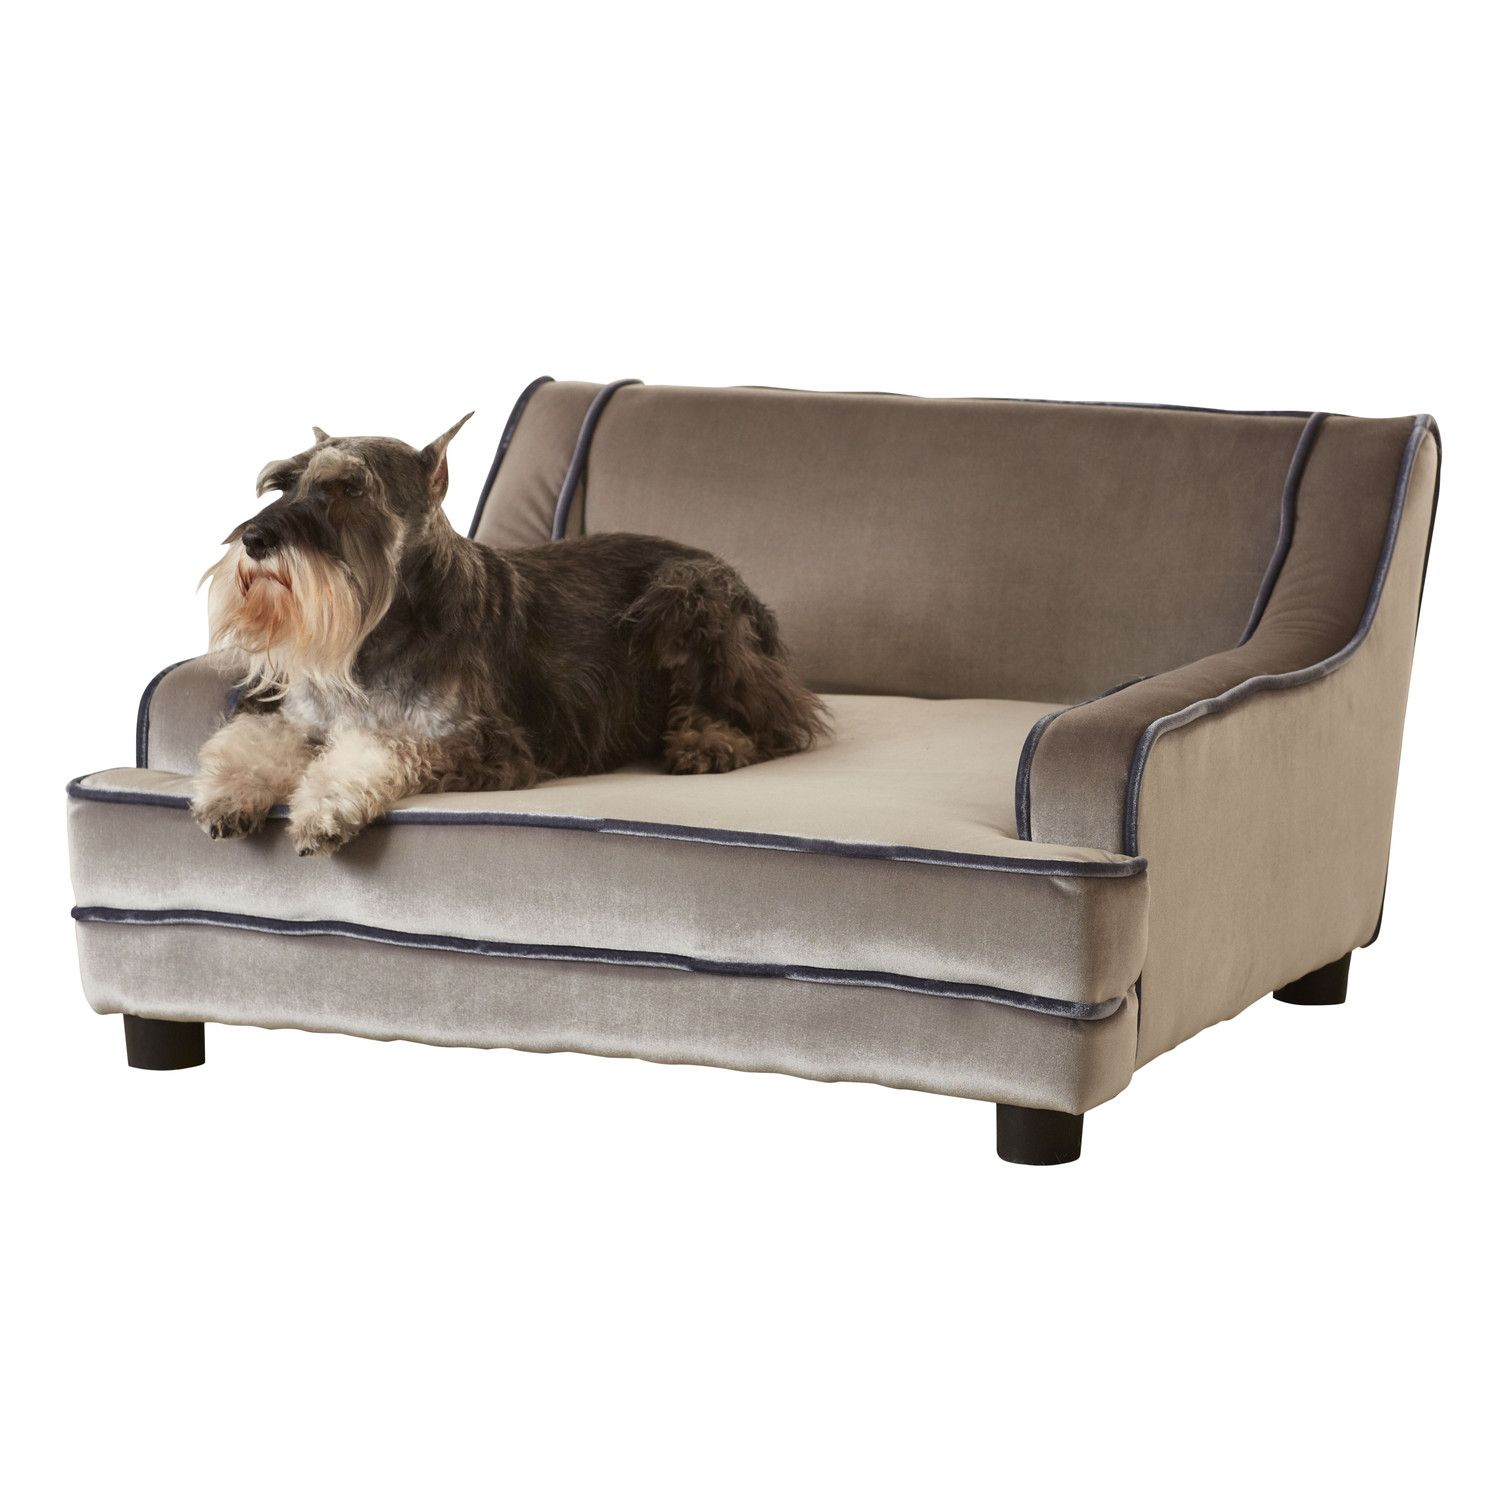 enchanted home pet mid century modern pet bed  four legged kids  - enchanted home pet mid century modern pet bed